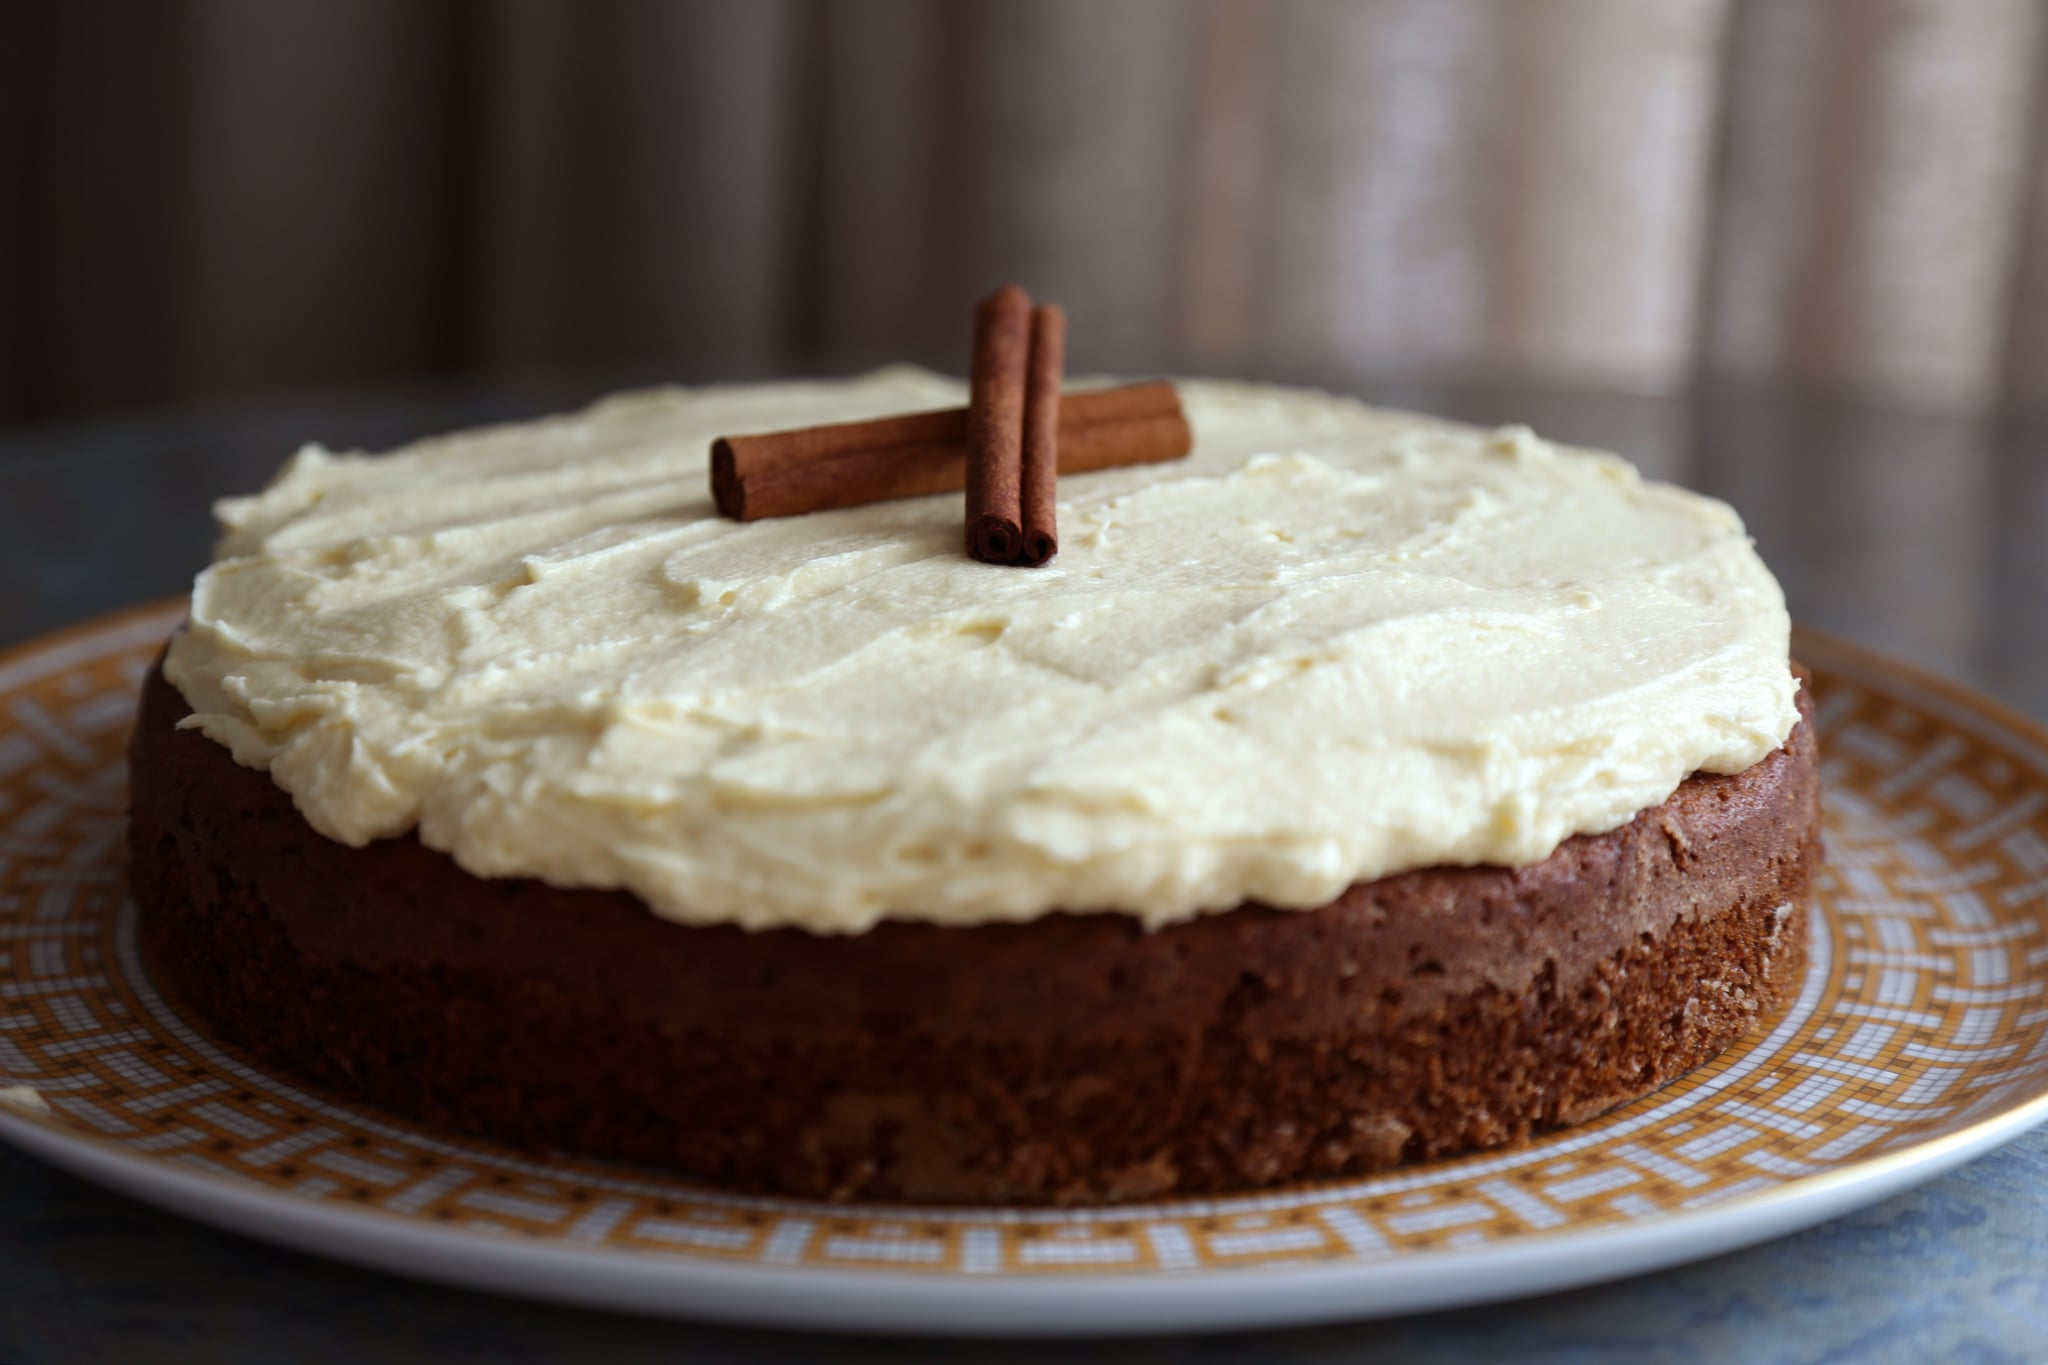 Cake Icing Recipe For Piping: Easy Pumpkin Cake With Cream Cheese Frosting Recipe